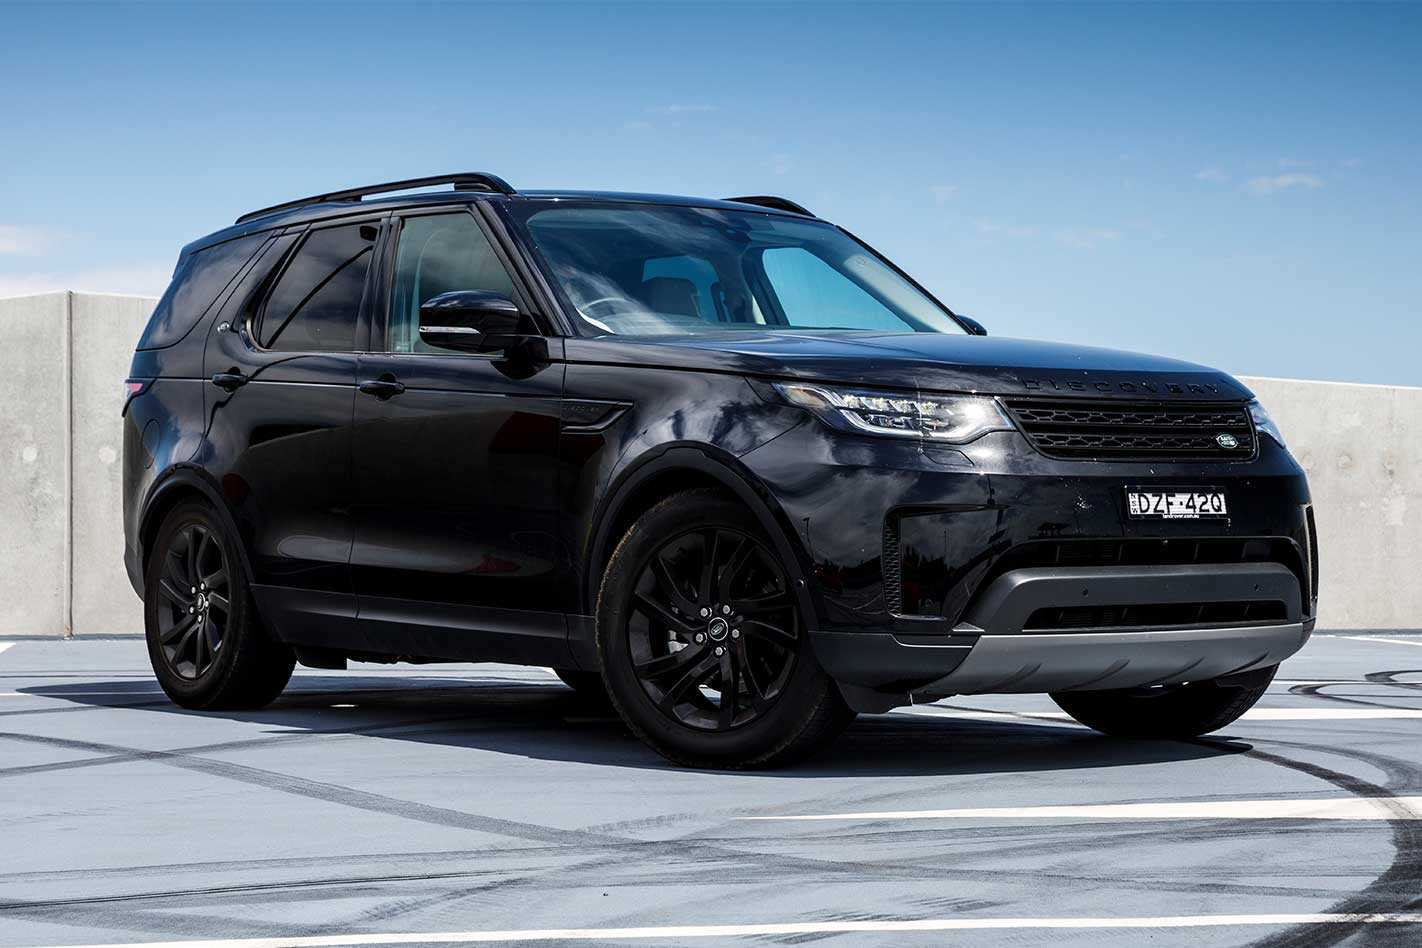 60 The Best 2019 Land Rover Discovery First Drive